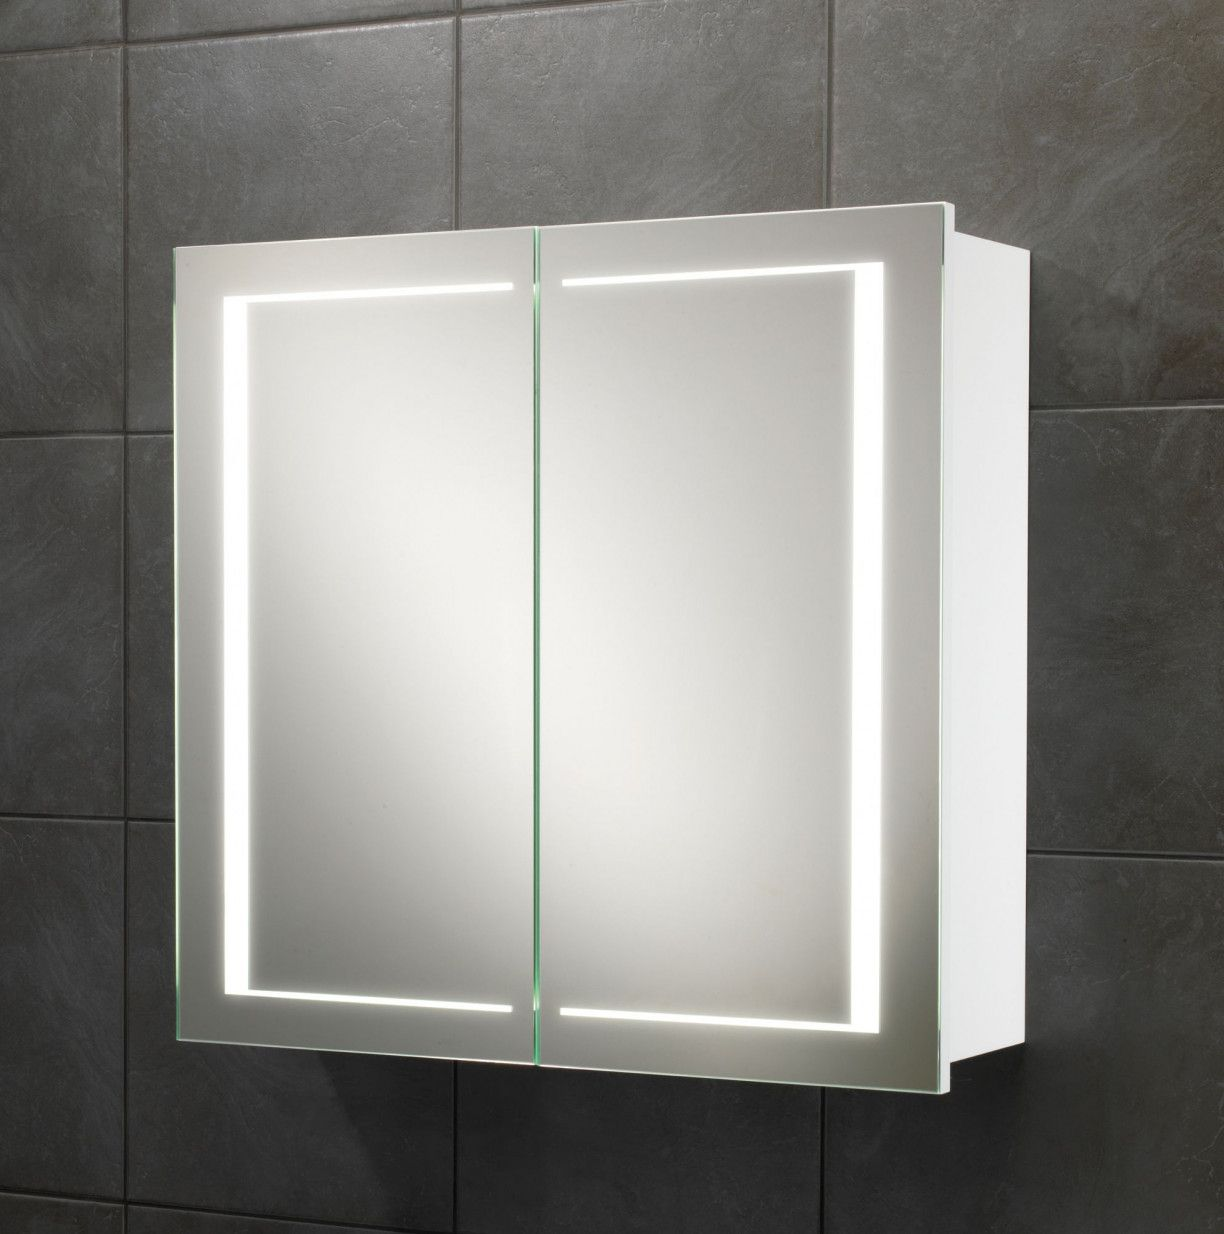 20 Double Sided Mirror Bathroom Cabinet Favorite Interior Paint Colors Check More At Http